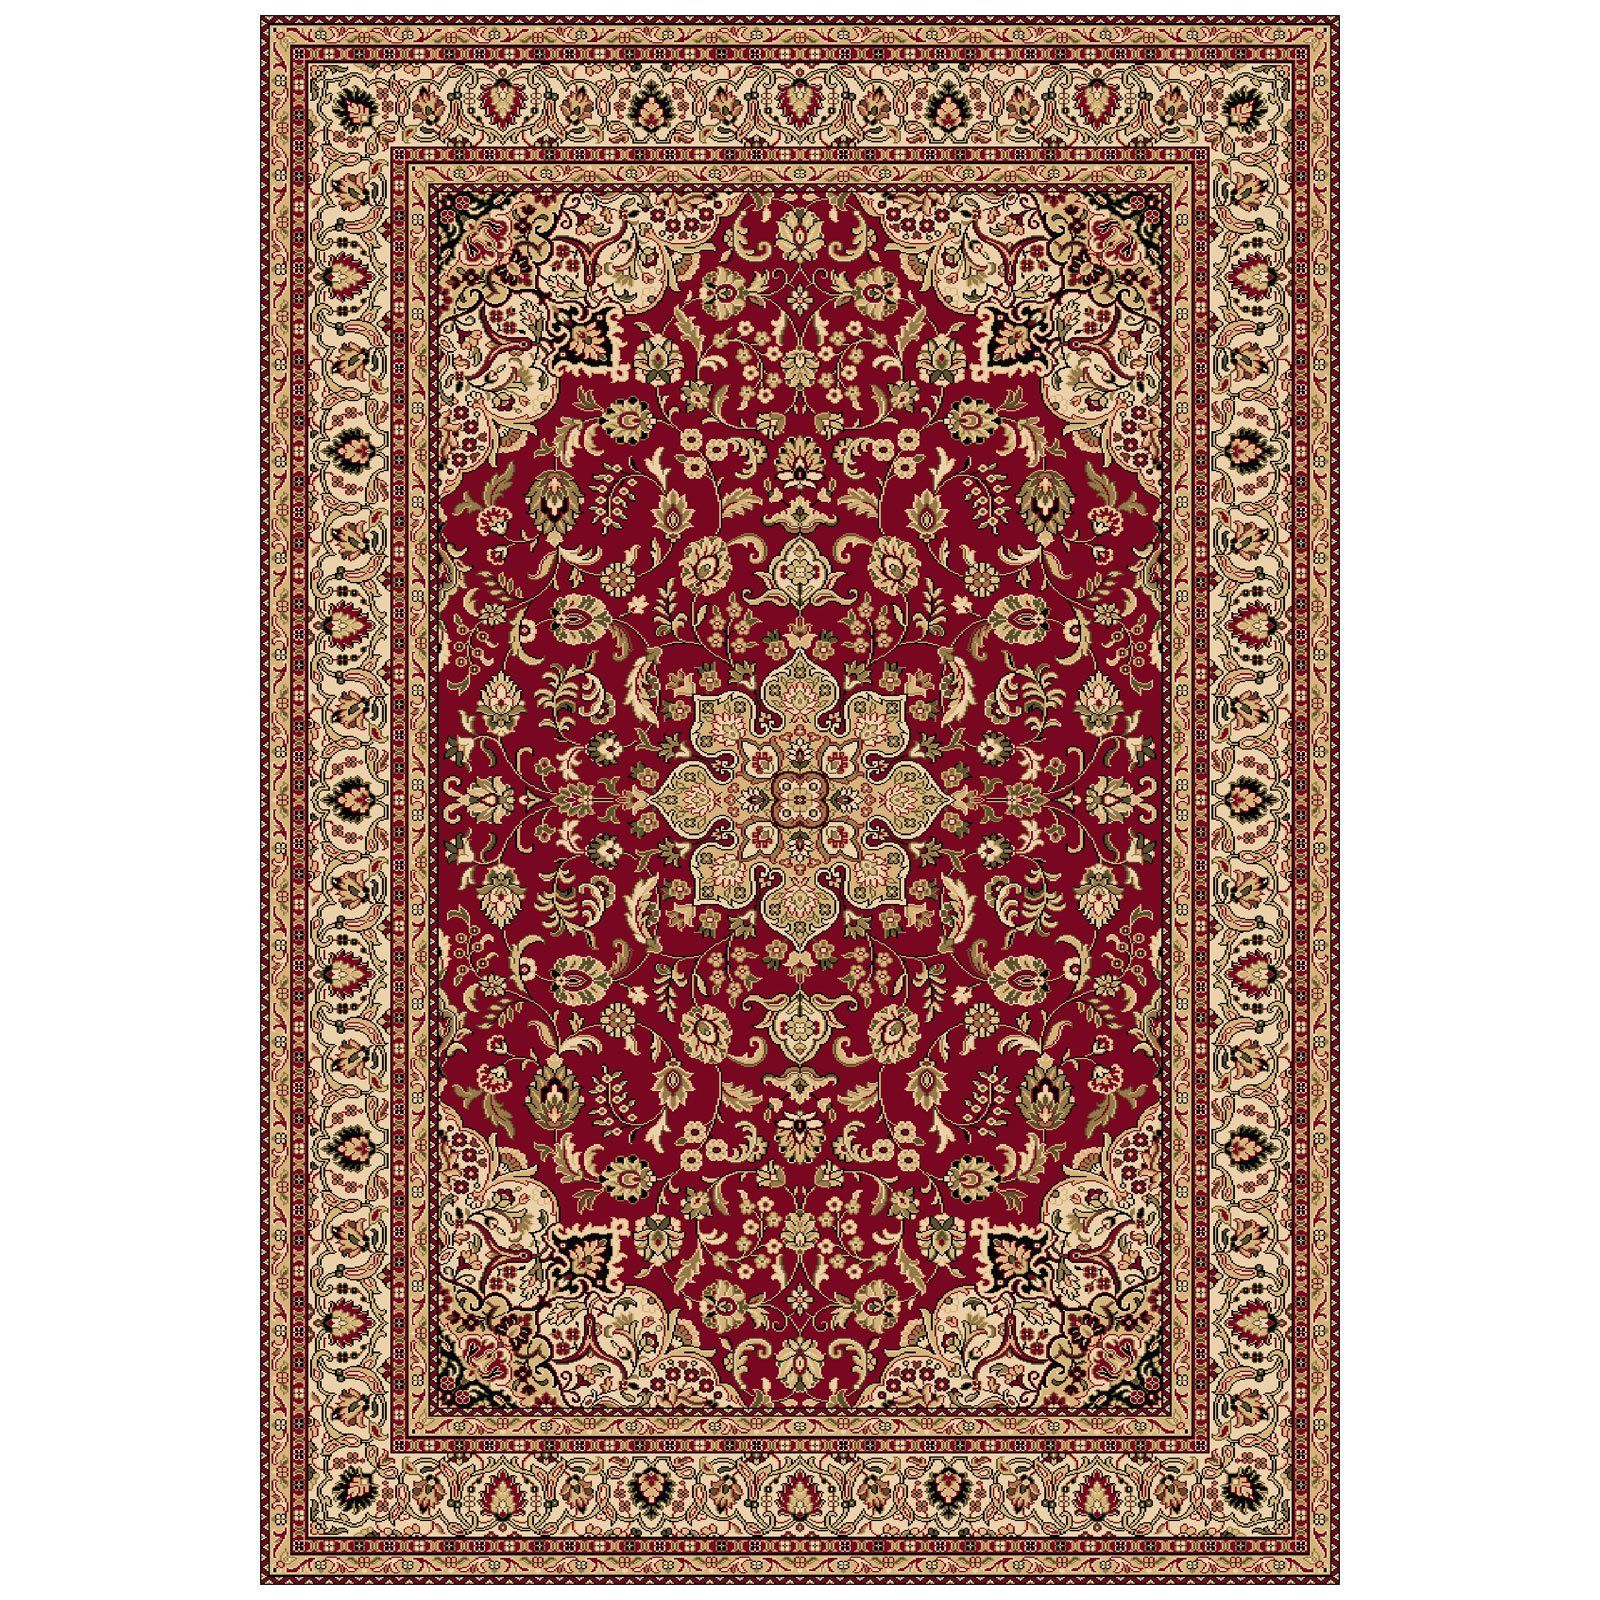 ORIENTAL CARPETS | Dynamic Rugs Shiraz 51010 Medallion Persian Rug - Red -  Area Rugs at